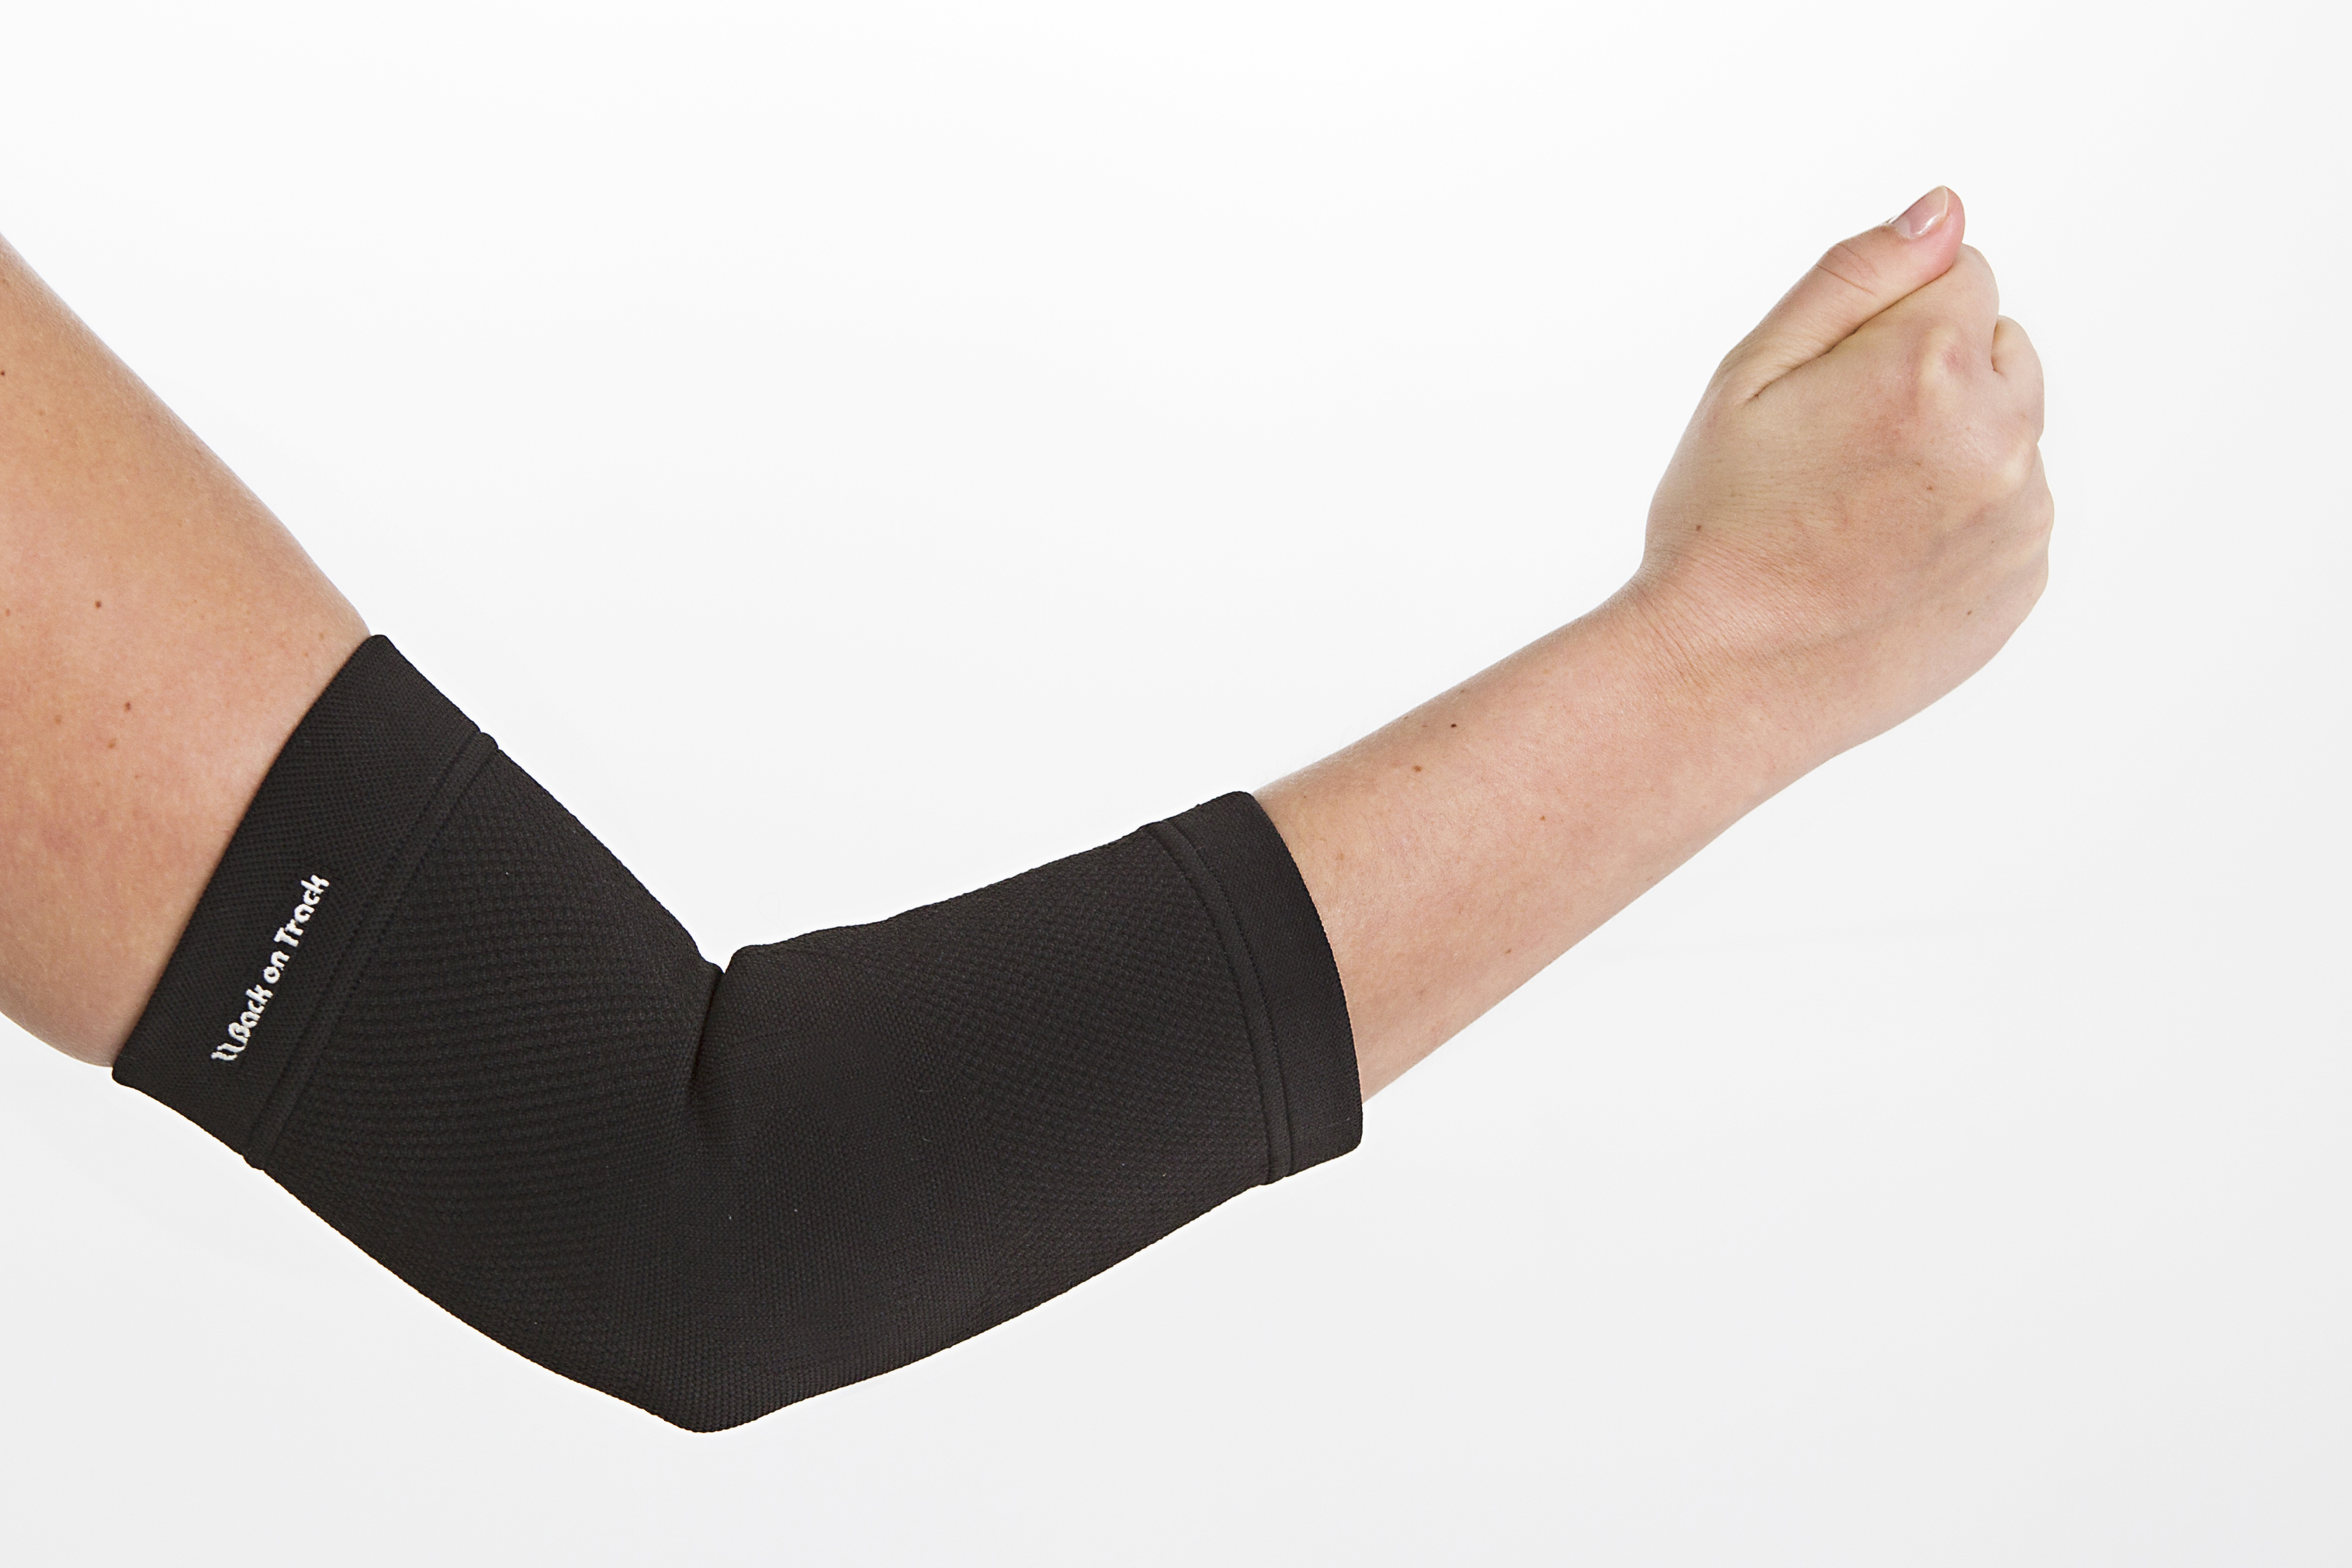 c0a8a49489 New Physio Elbow Brace $24.00 The Back on Track + Physio Elbow ...